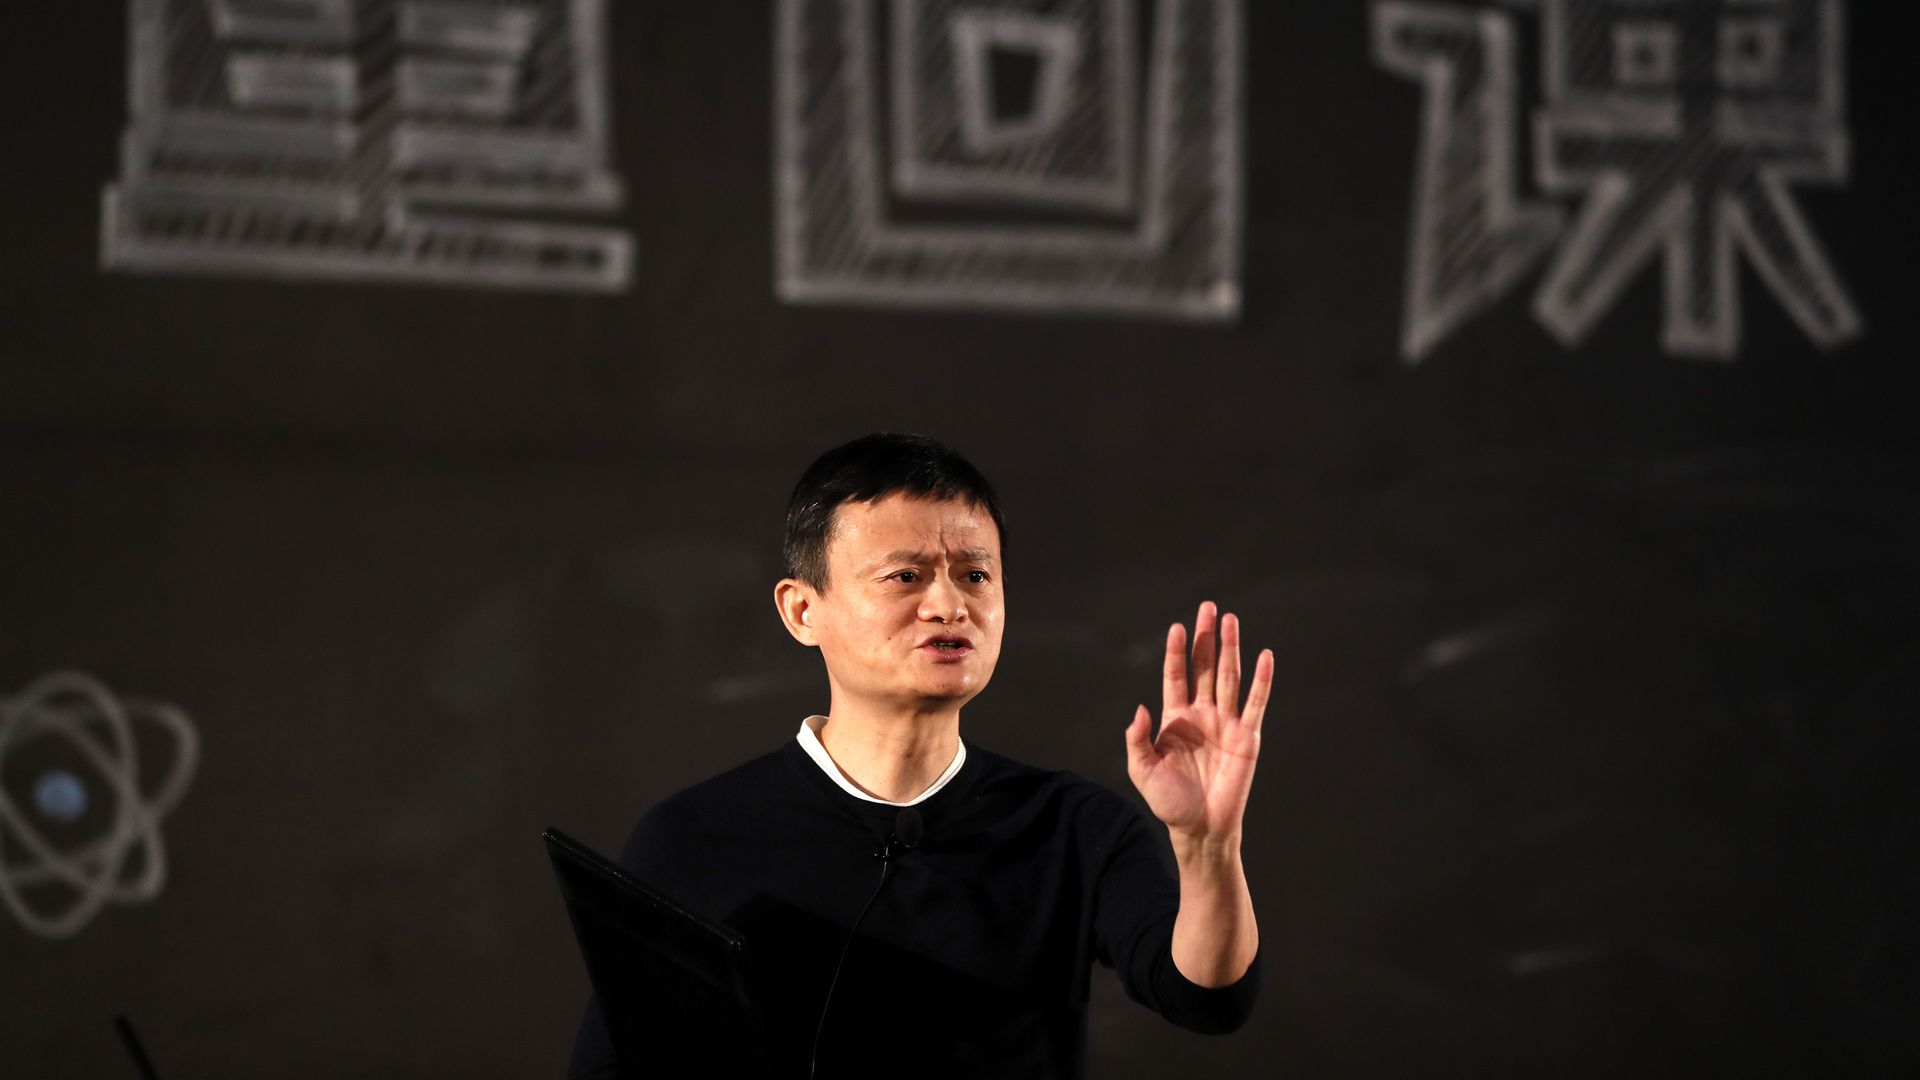 Jack Ma stands on a stage